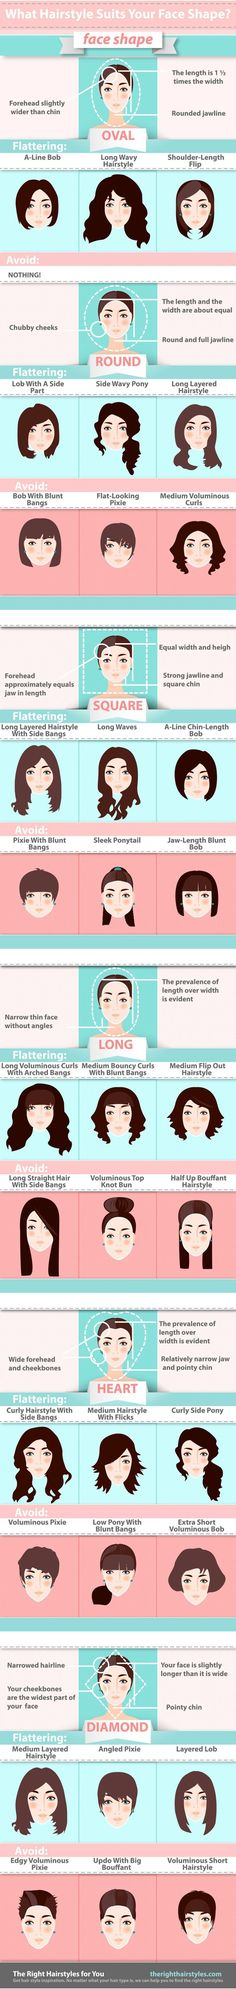 What Hairstyle Suits Your Face Shape #hair | thebeautyspotqld.com.au: